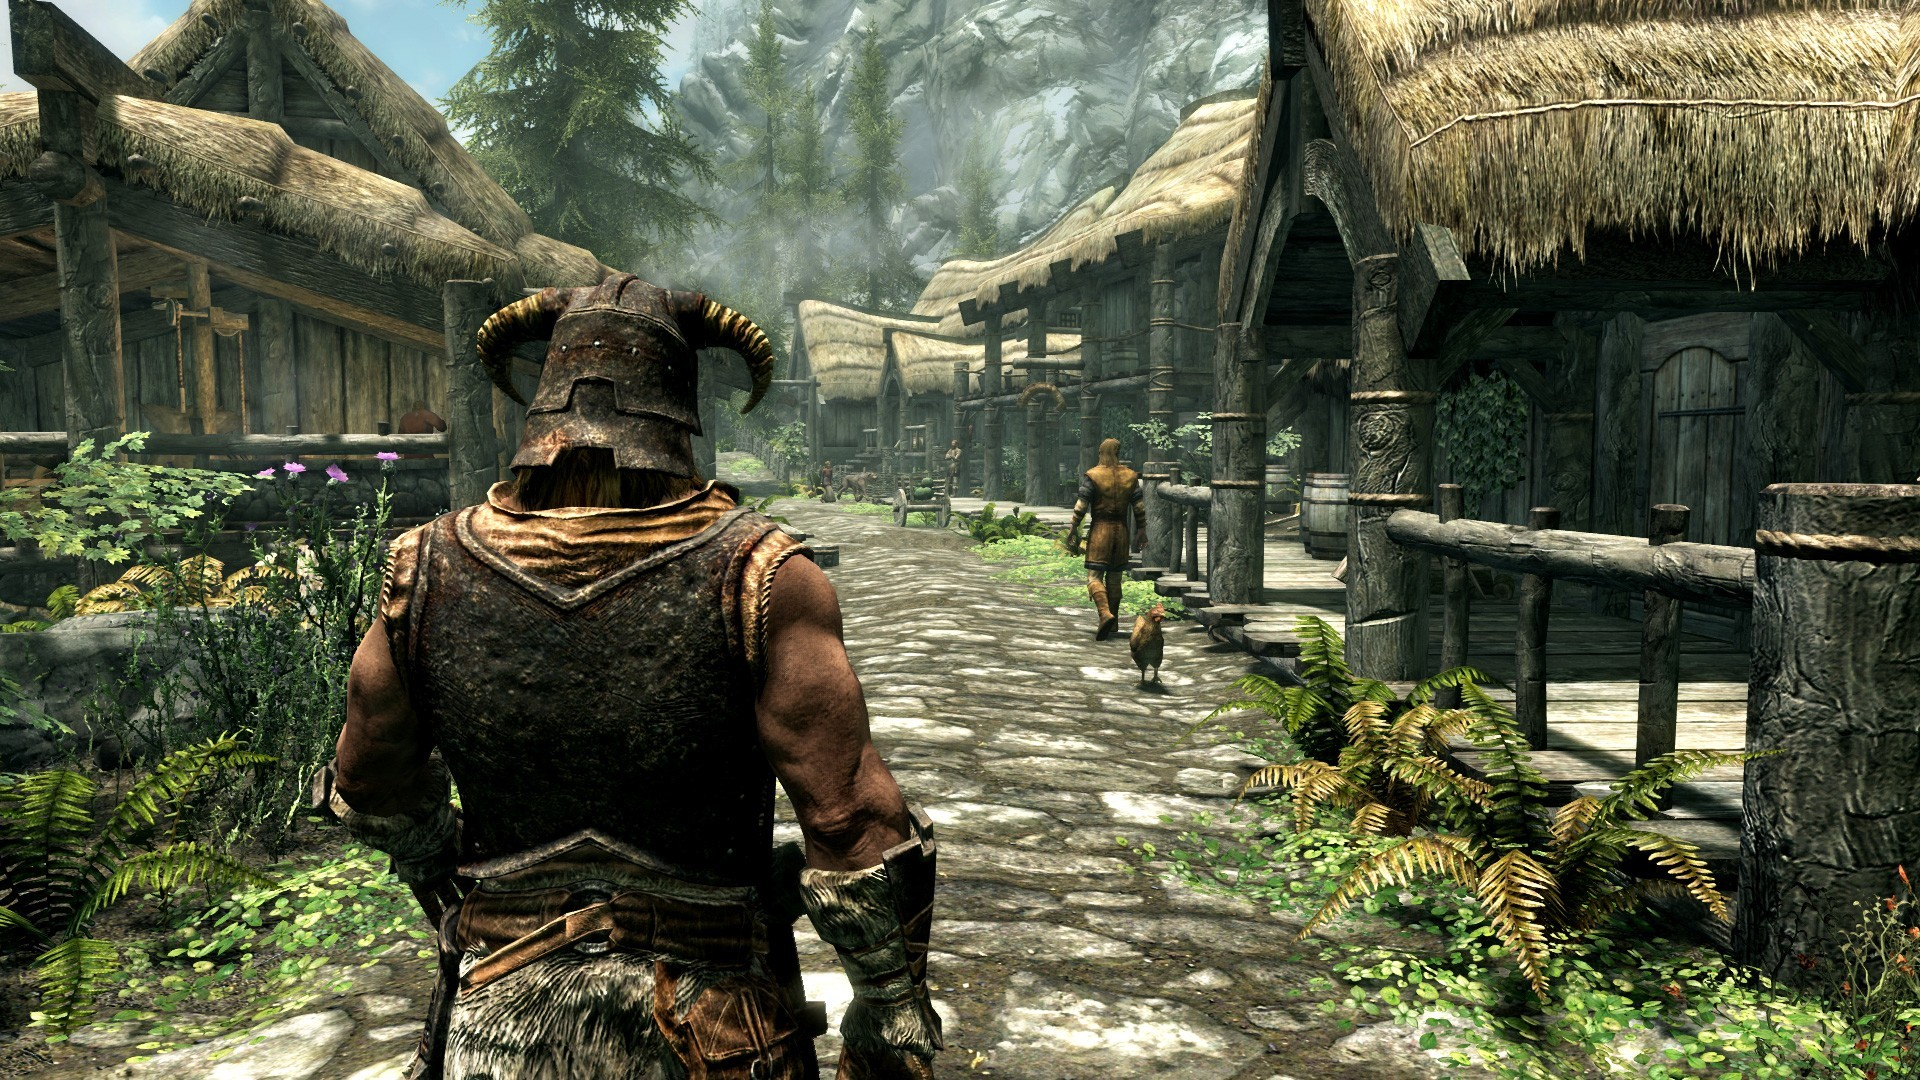 datant Skyrim mod post divorce rencontres Blogs